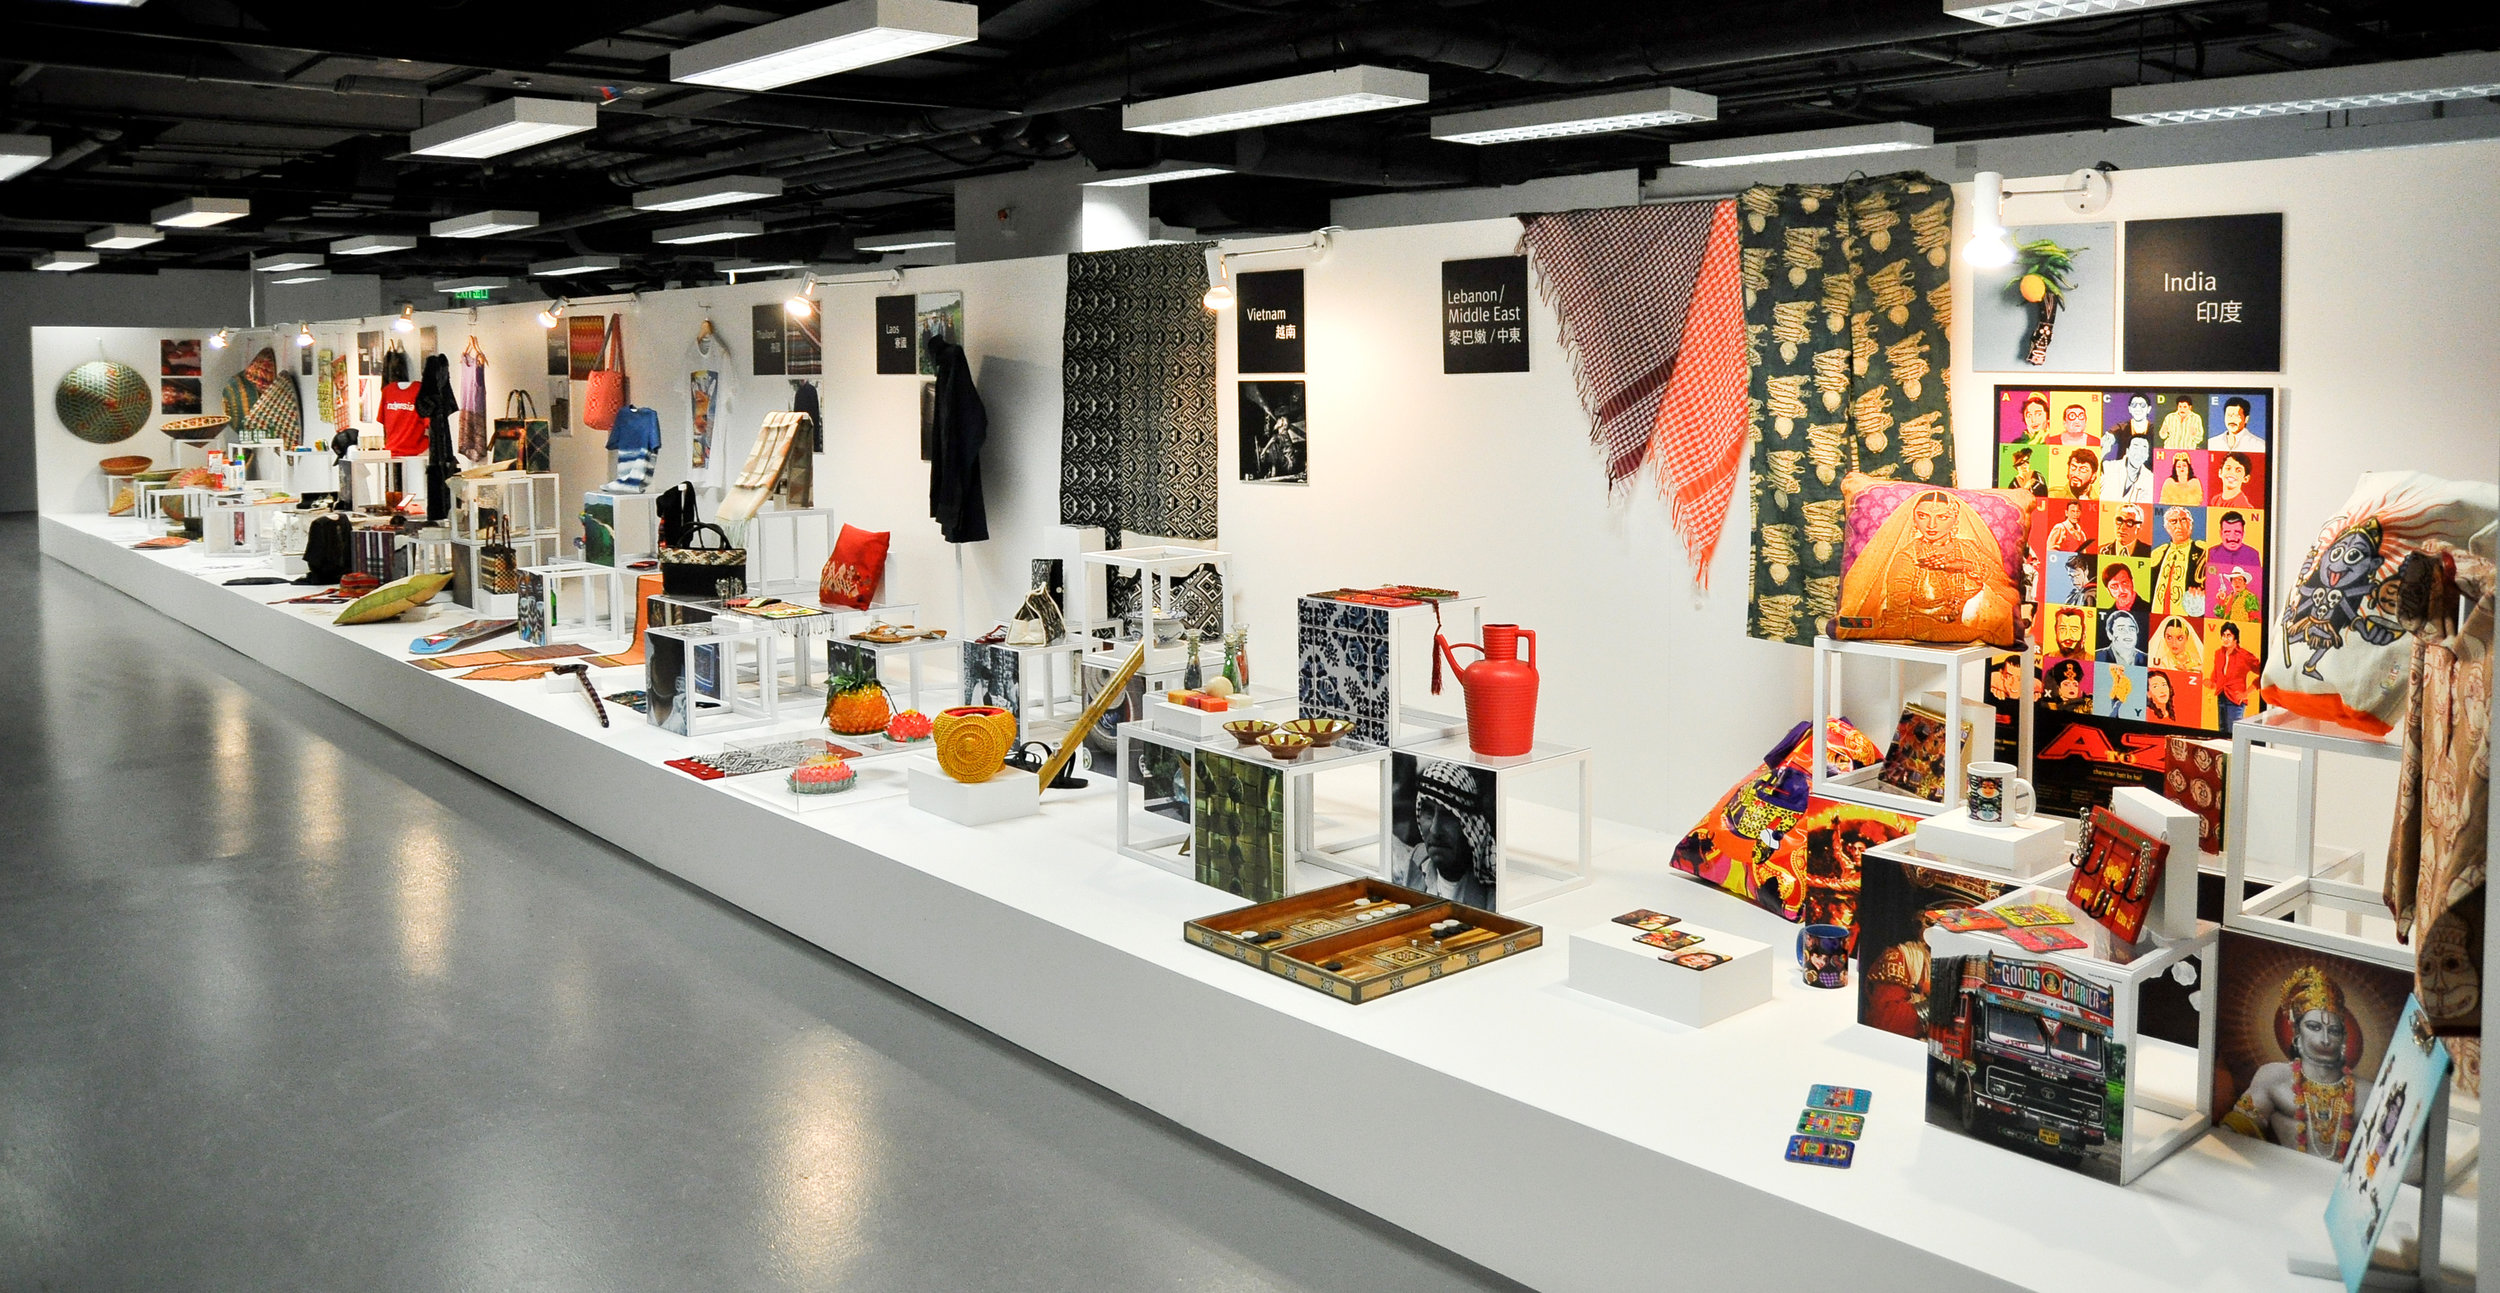 World Marketplace: A display of contemporary products inspired by the colours, motifs, materials or form of indigenous objects.